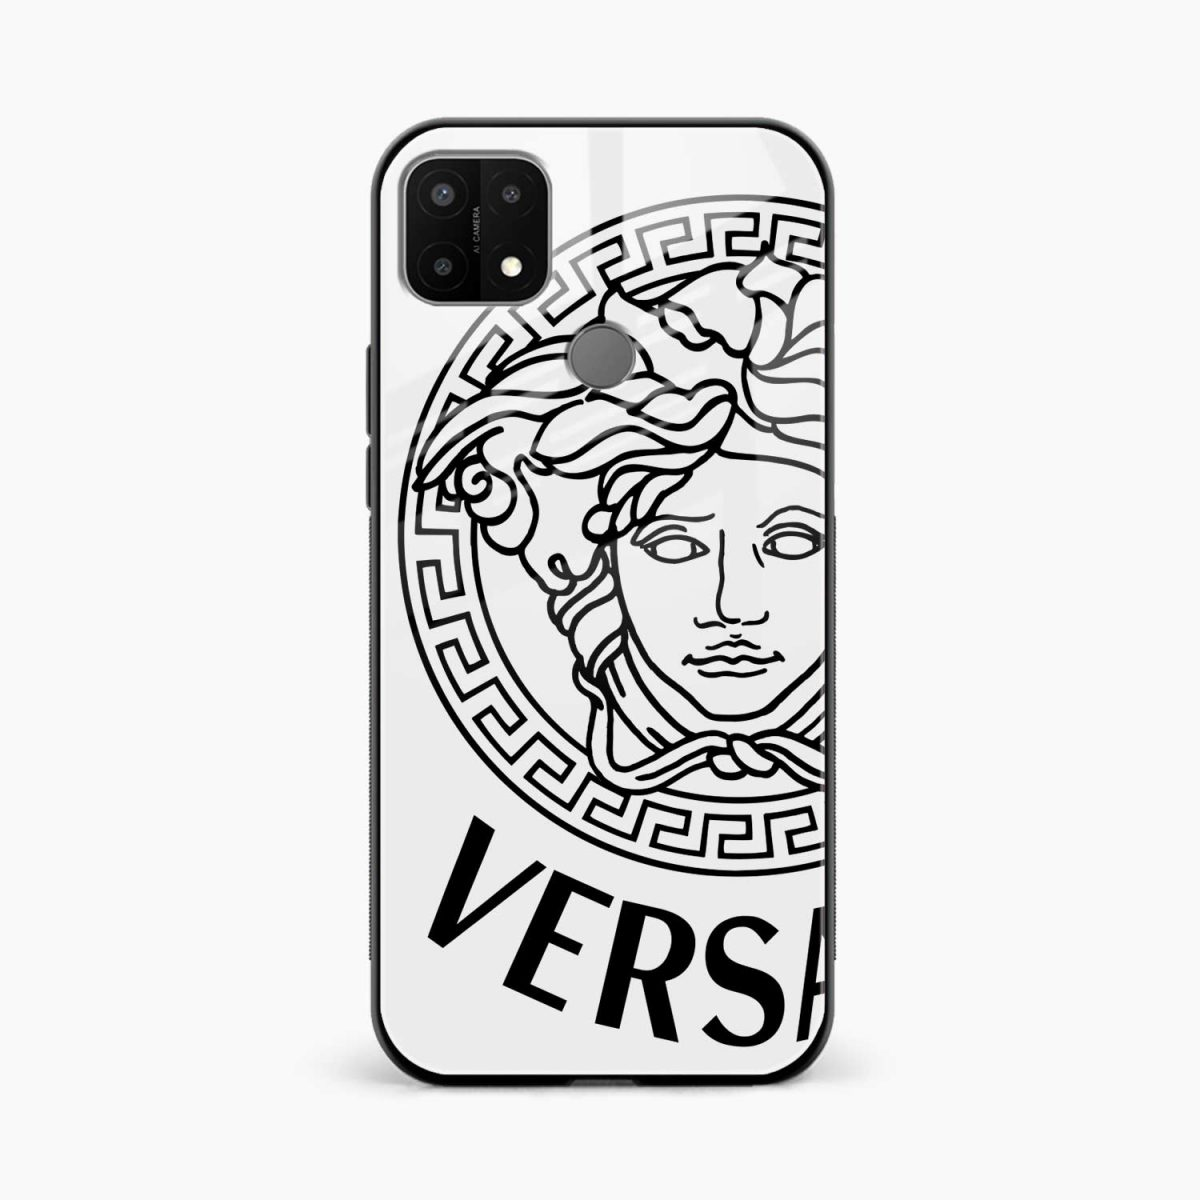 versace black white front view oppo a15 back cover